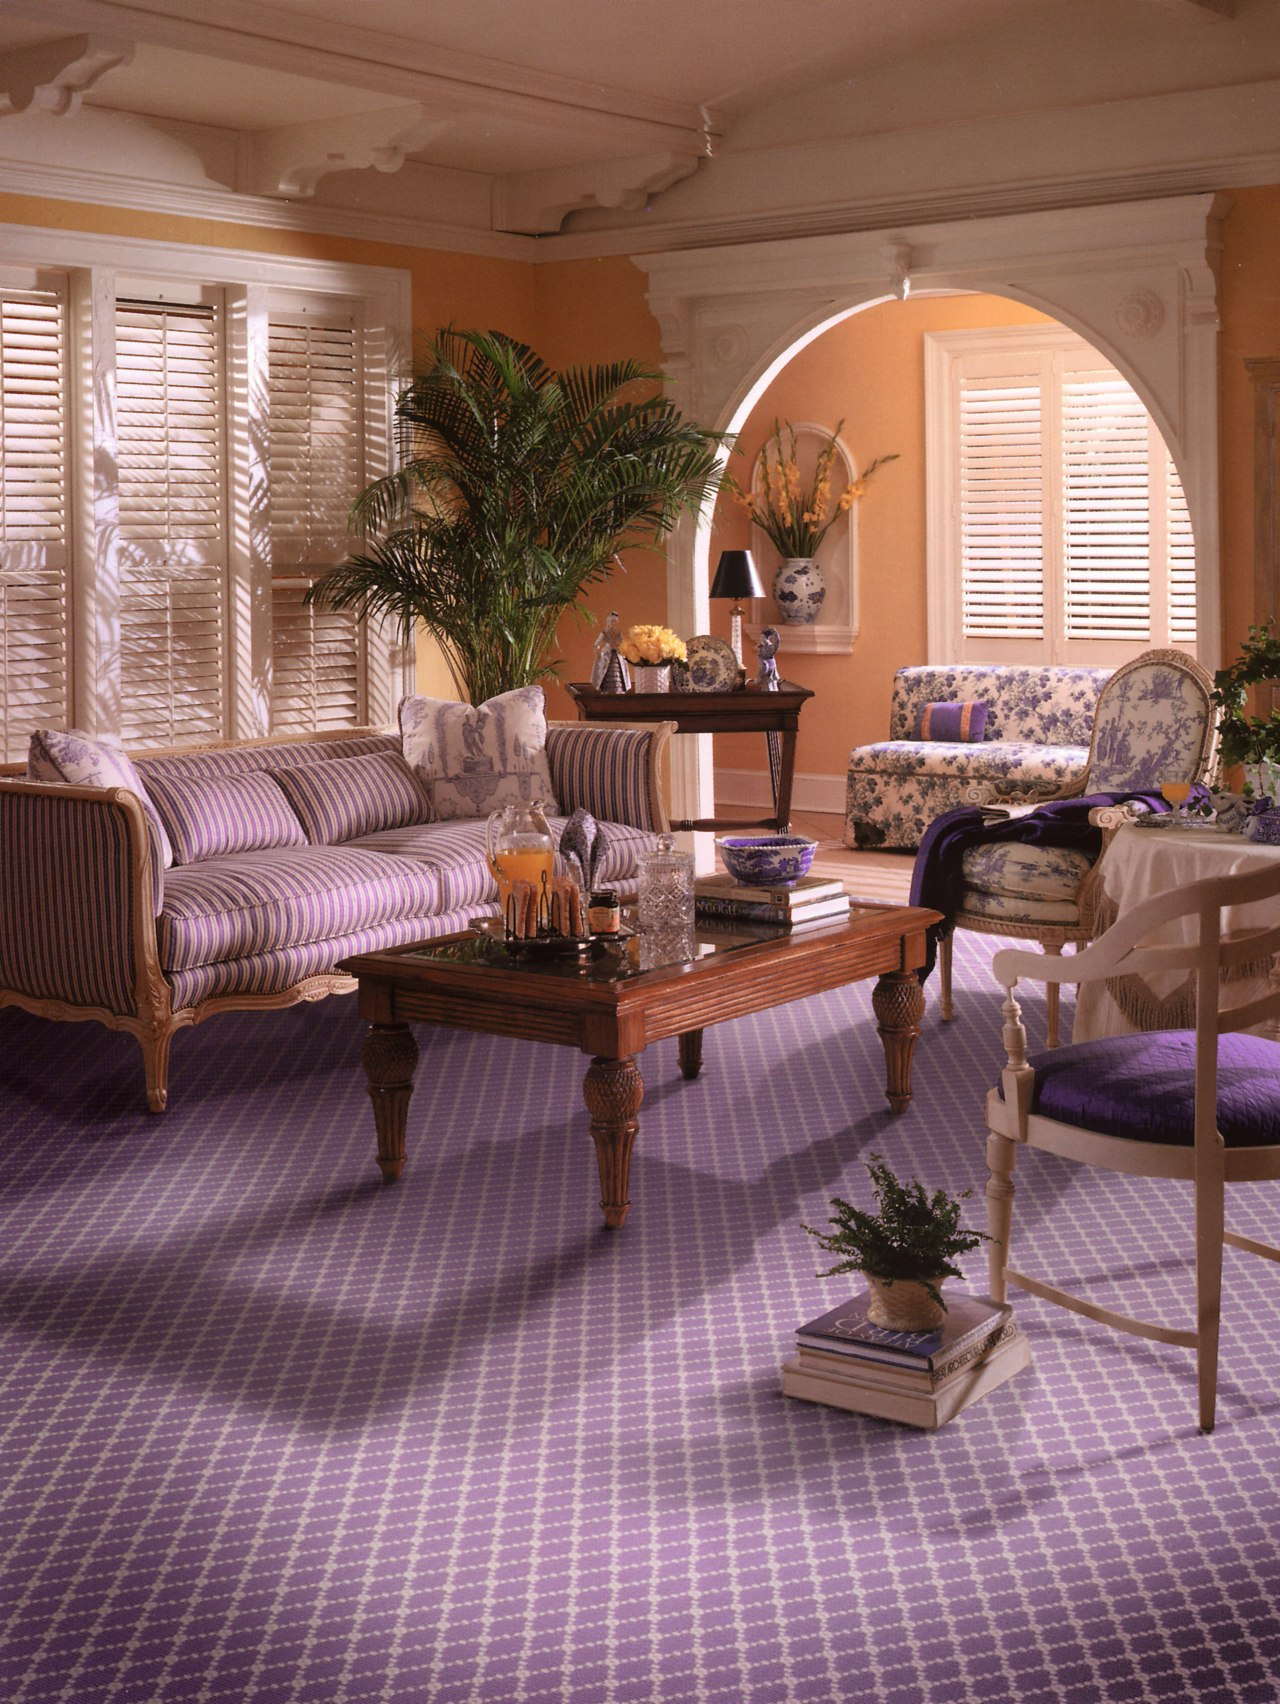 View of a living area, lavender coloured patterned floor, flooring, furniture, hardwood, home, interior design, living room, room, table, wood, brown